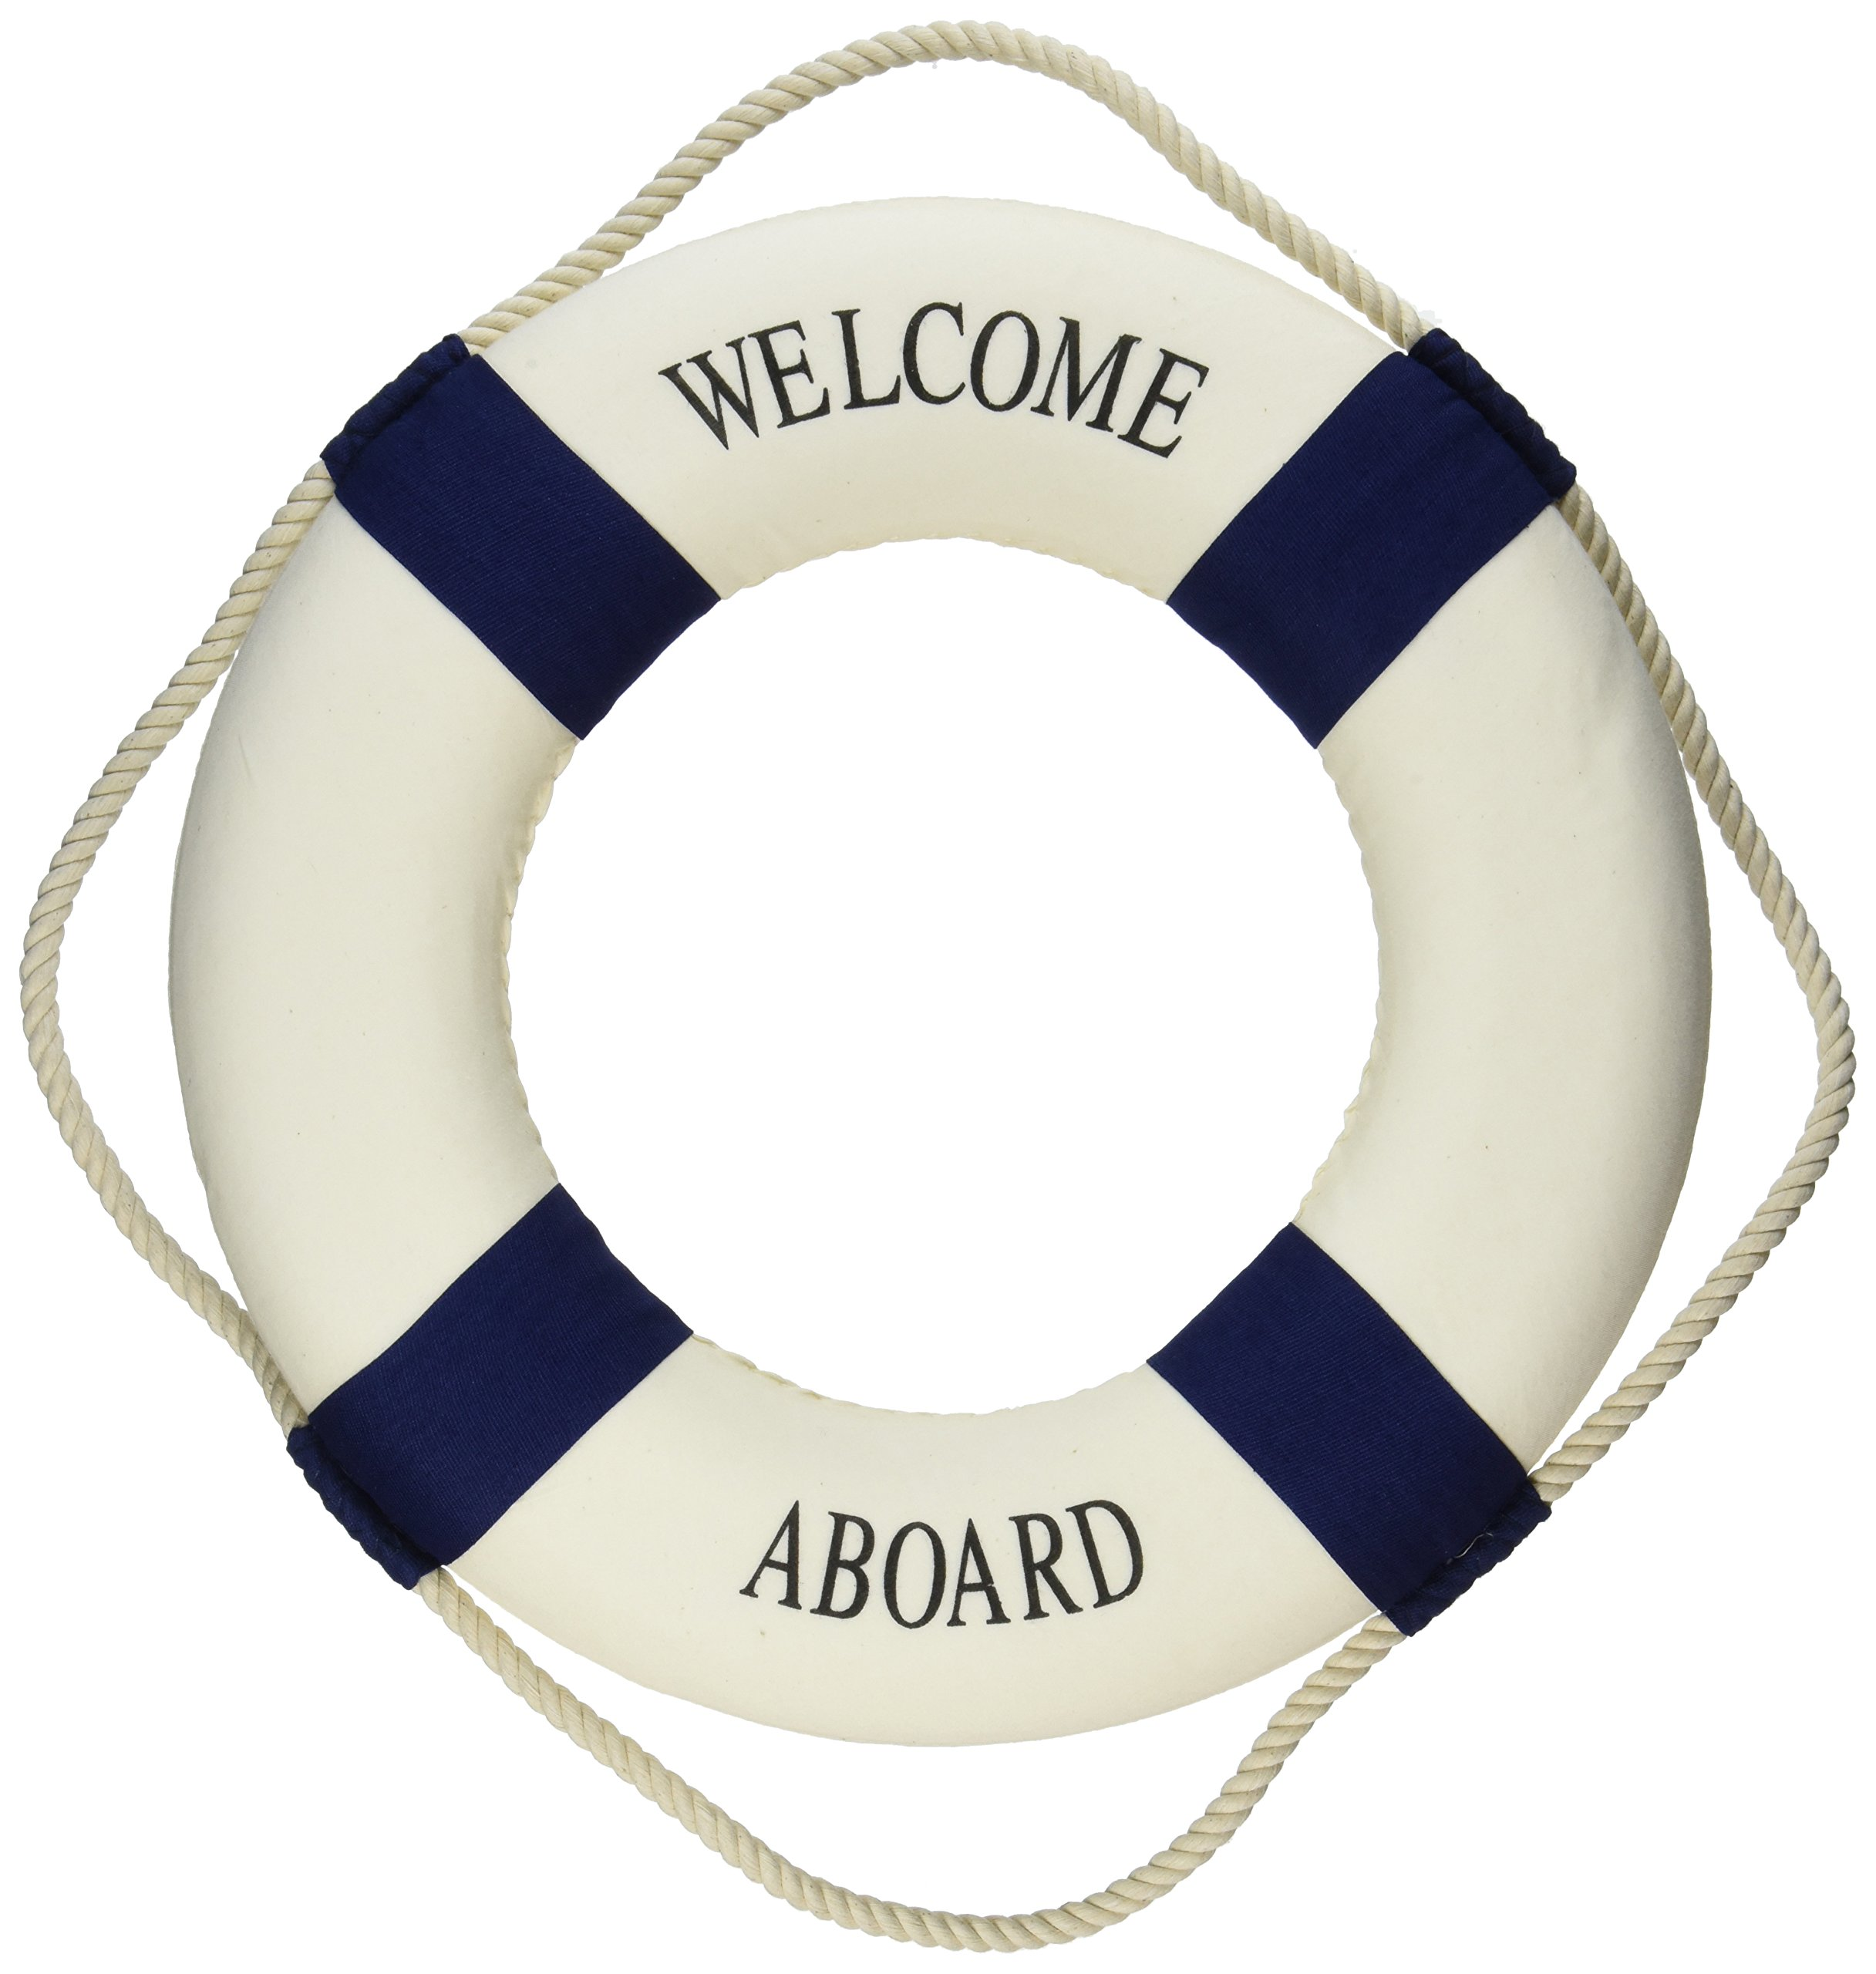 Oliasports Welcome Aboard Cloth Life Ring Navy Accent Nautical Decor 13.5'' New - Decoration Only